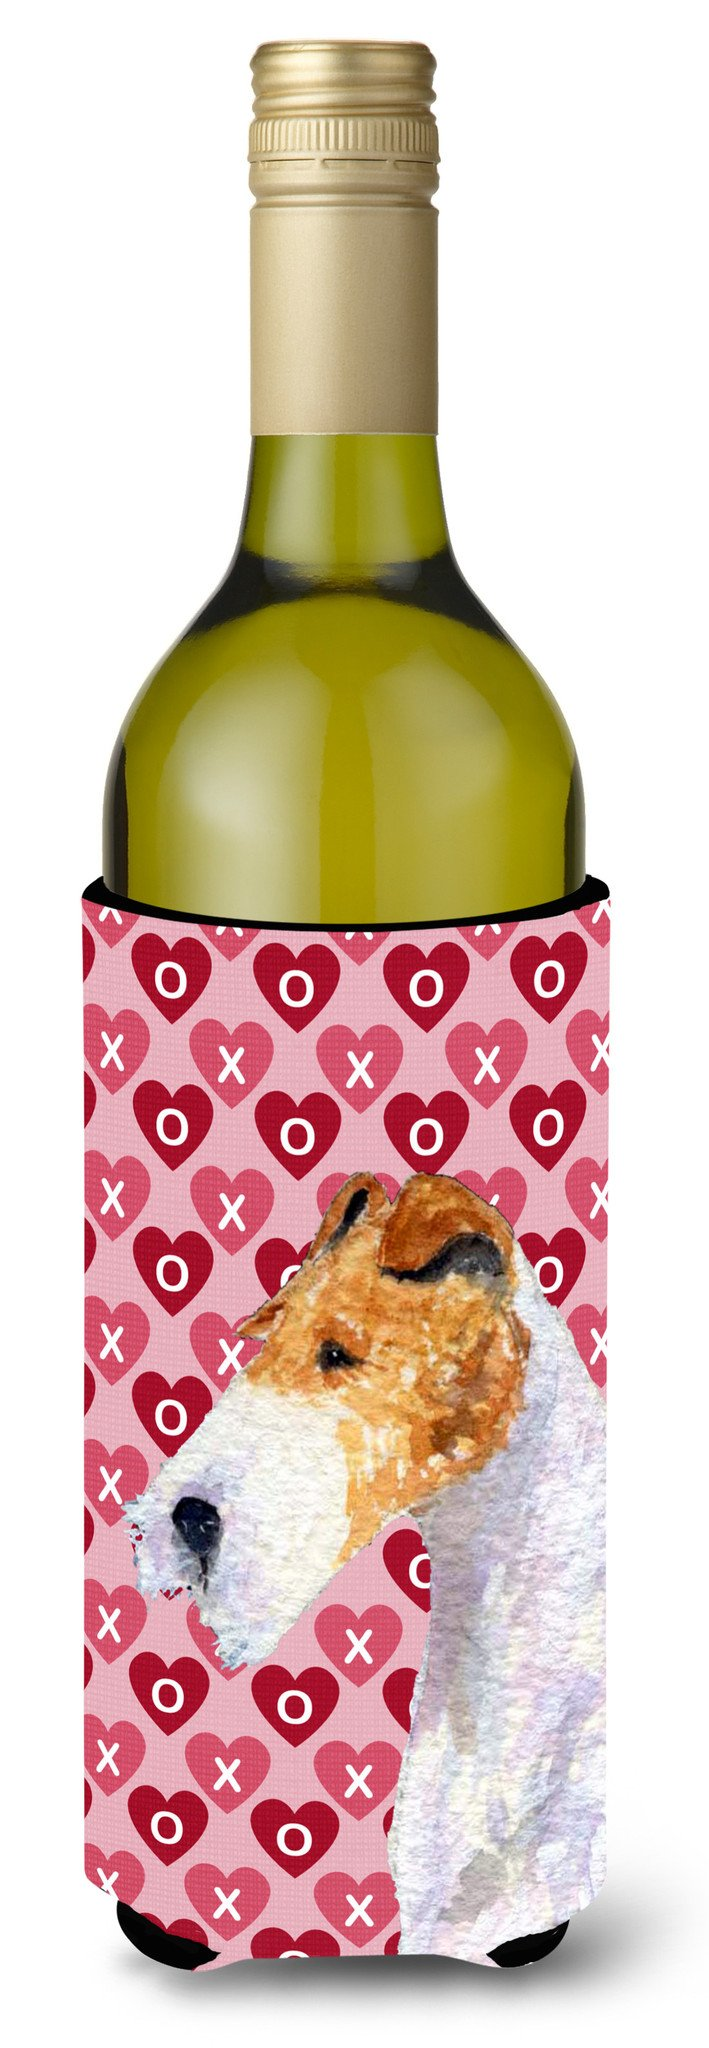 Fox Terrier Hearts Love and Valentine's Day Portrait Wine Bottle Beverage Insulator Beverage Insulator Hugger by Caroline's Treasures